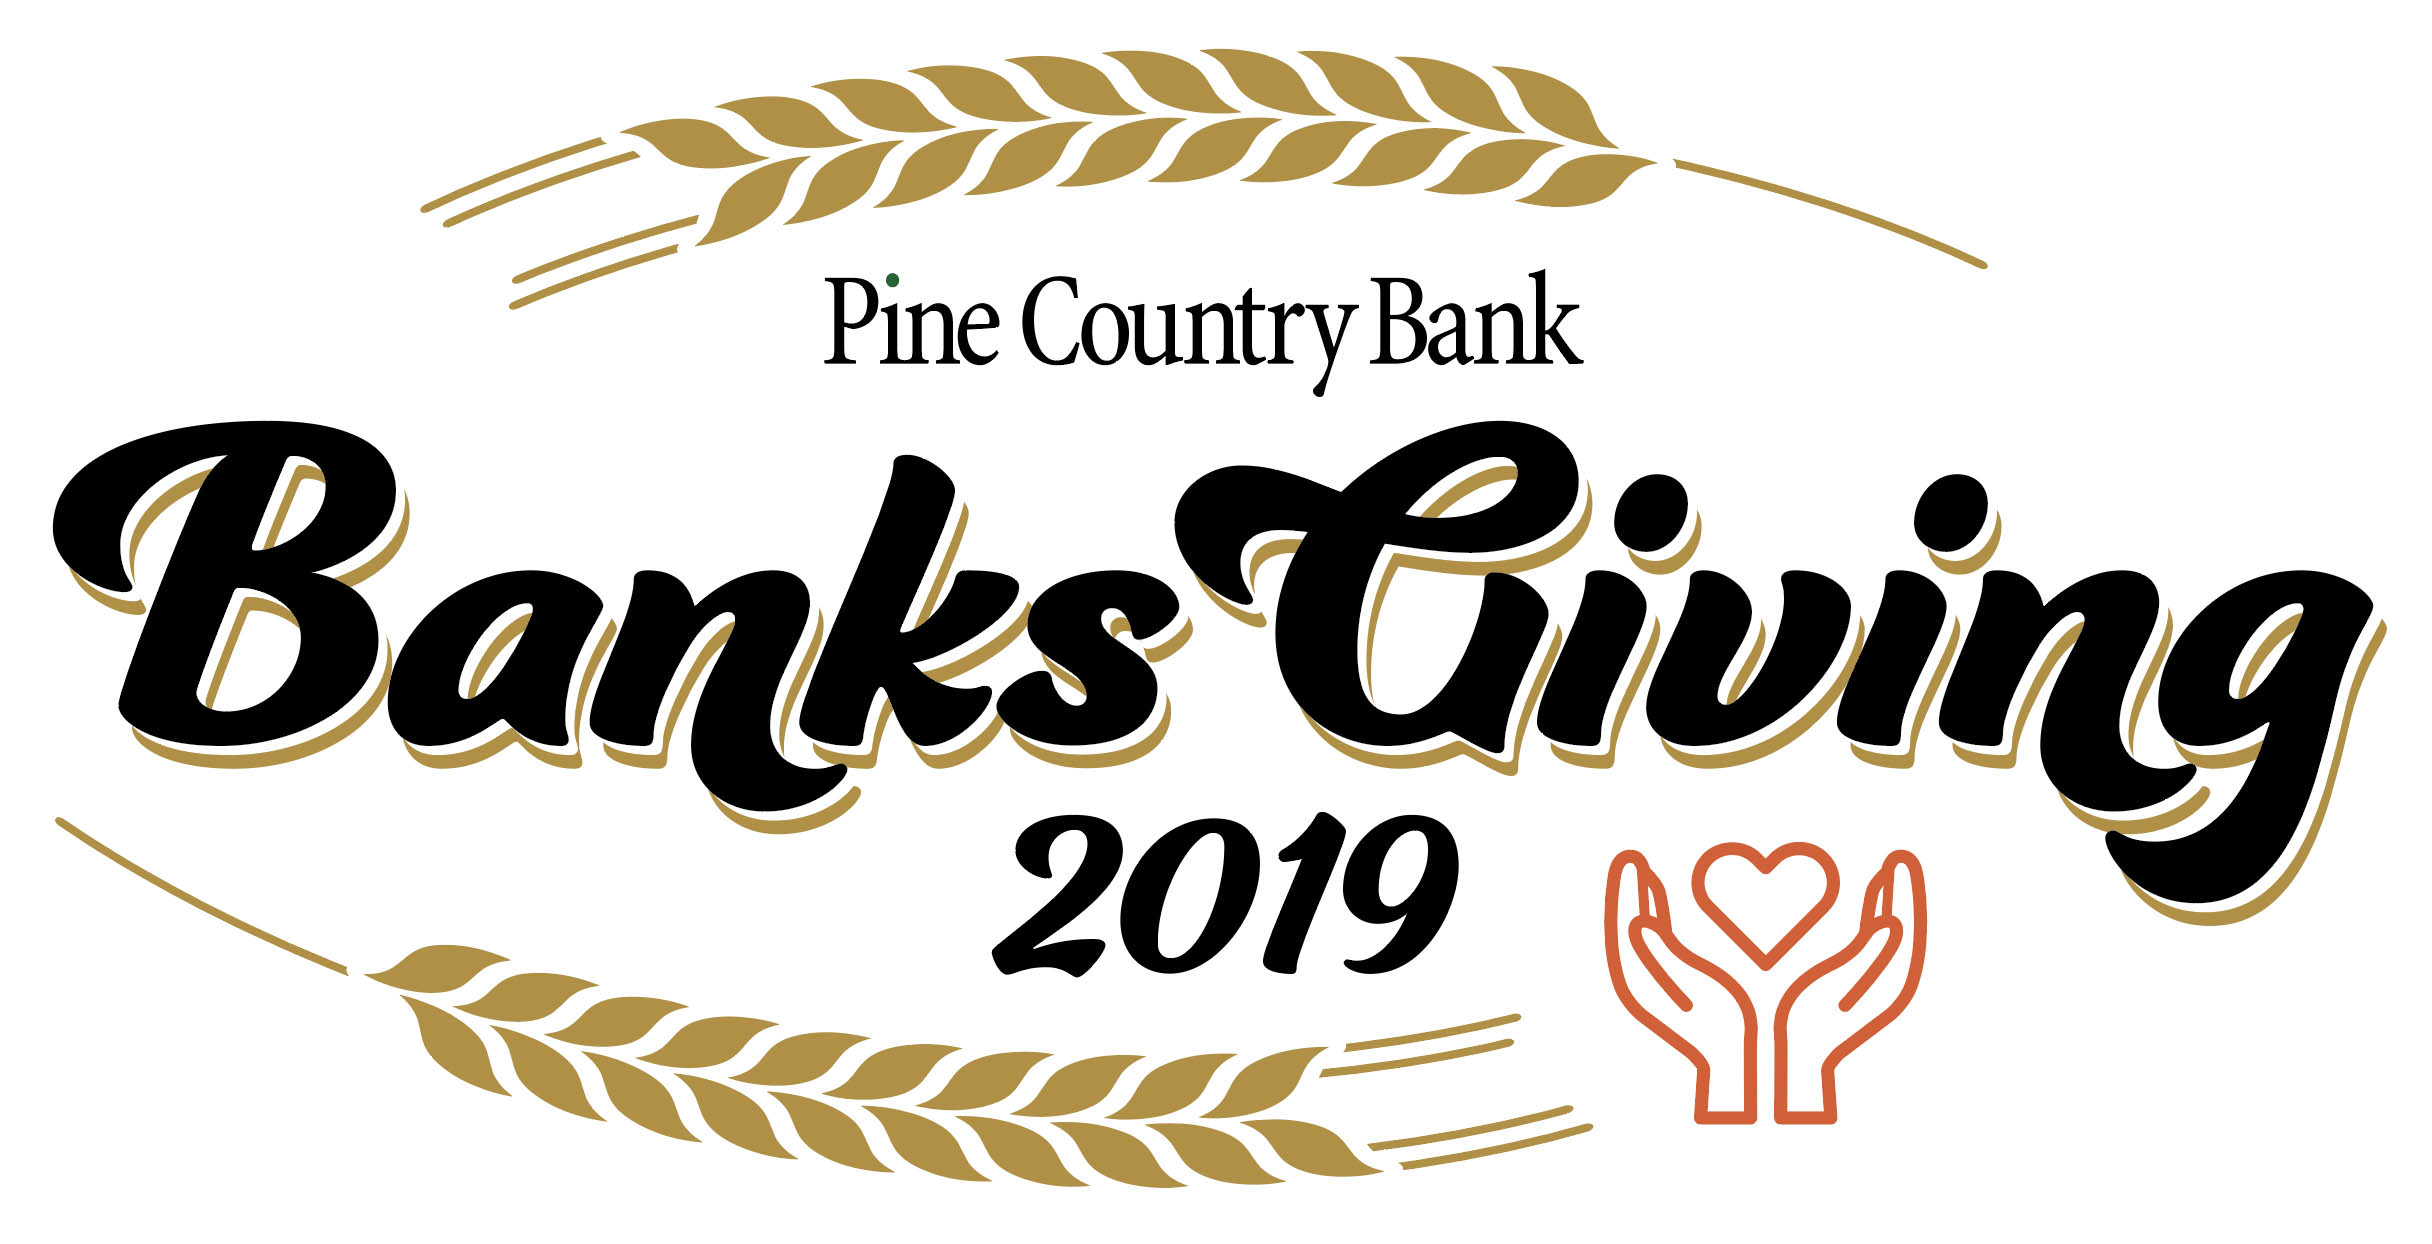 Logo. Features text Pine Country Bank Banksgiving 2019 with decorative wheat and open hands around heart.